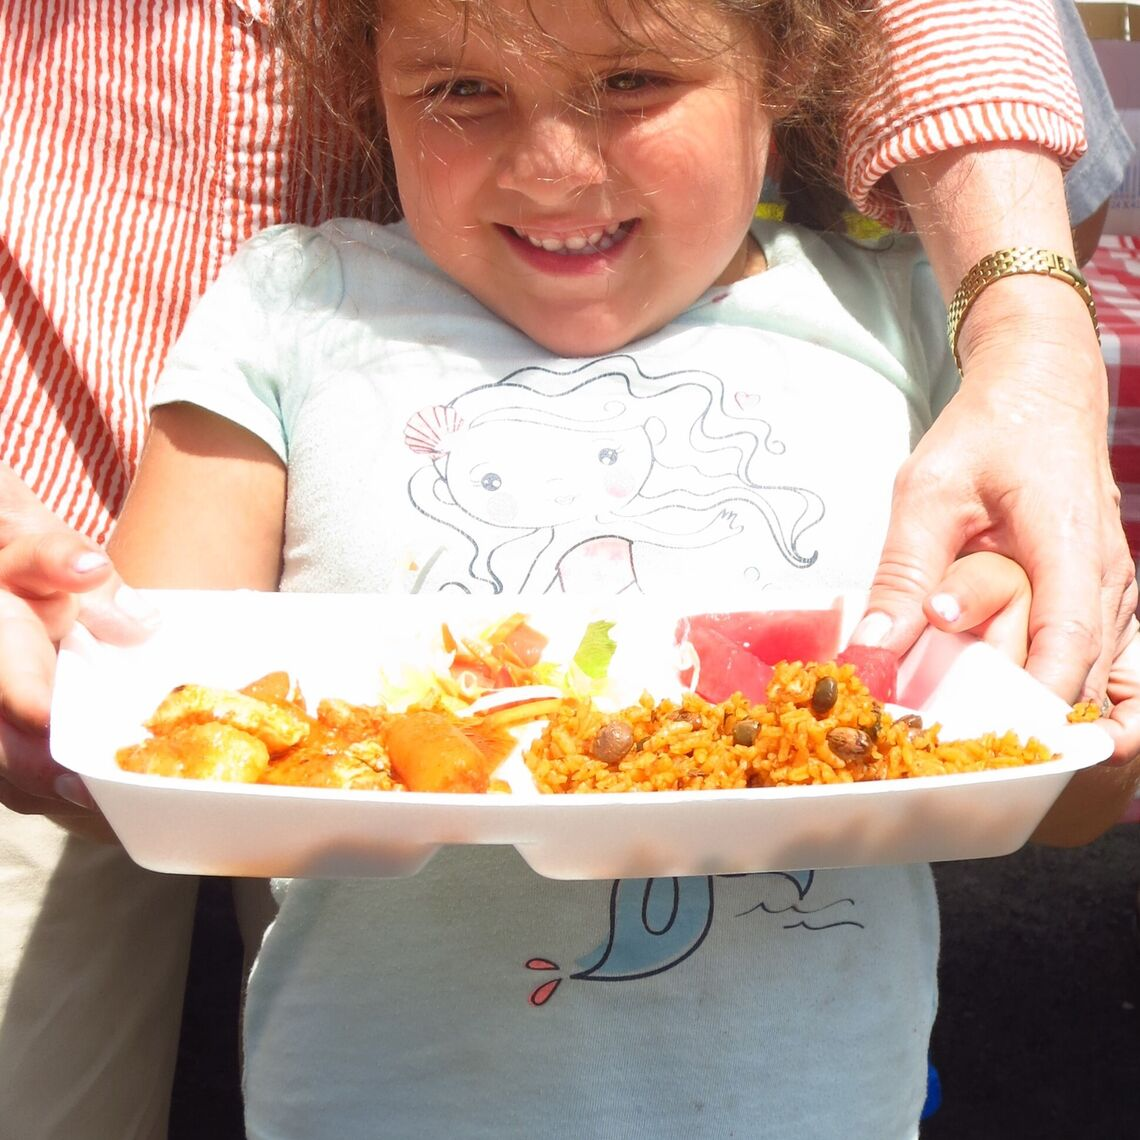 girl with tray of food